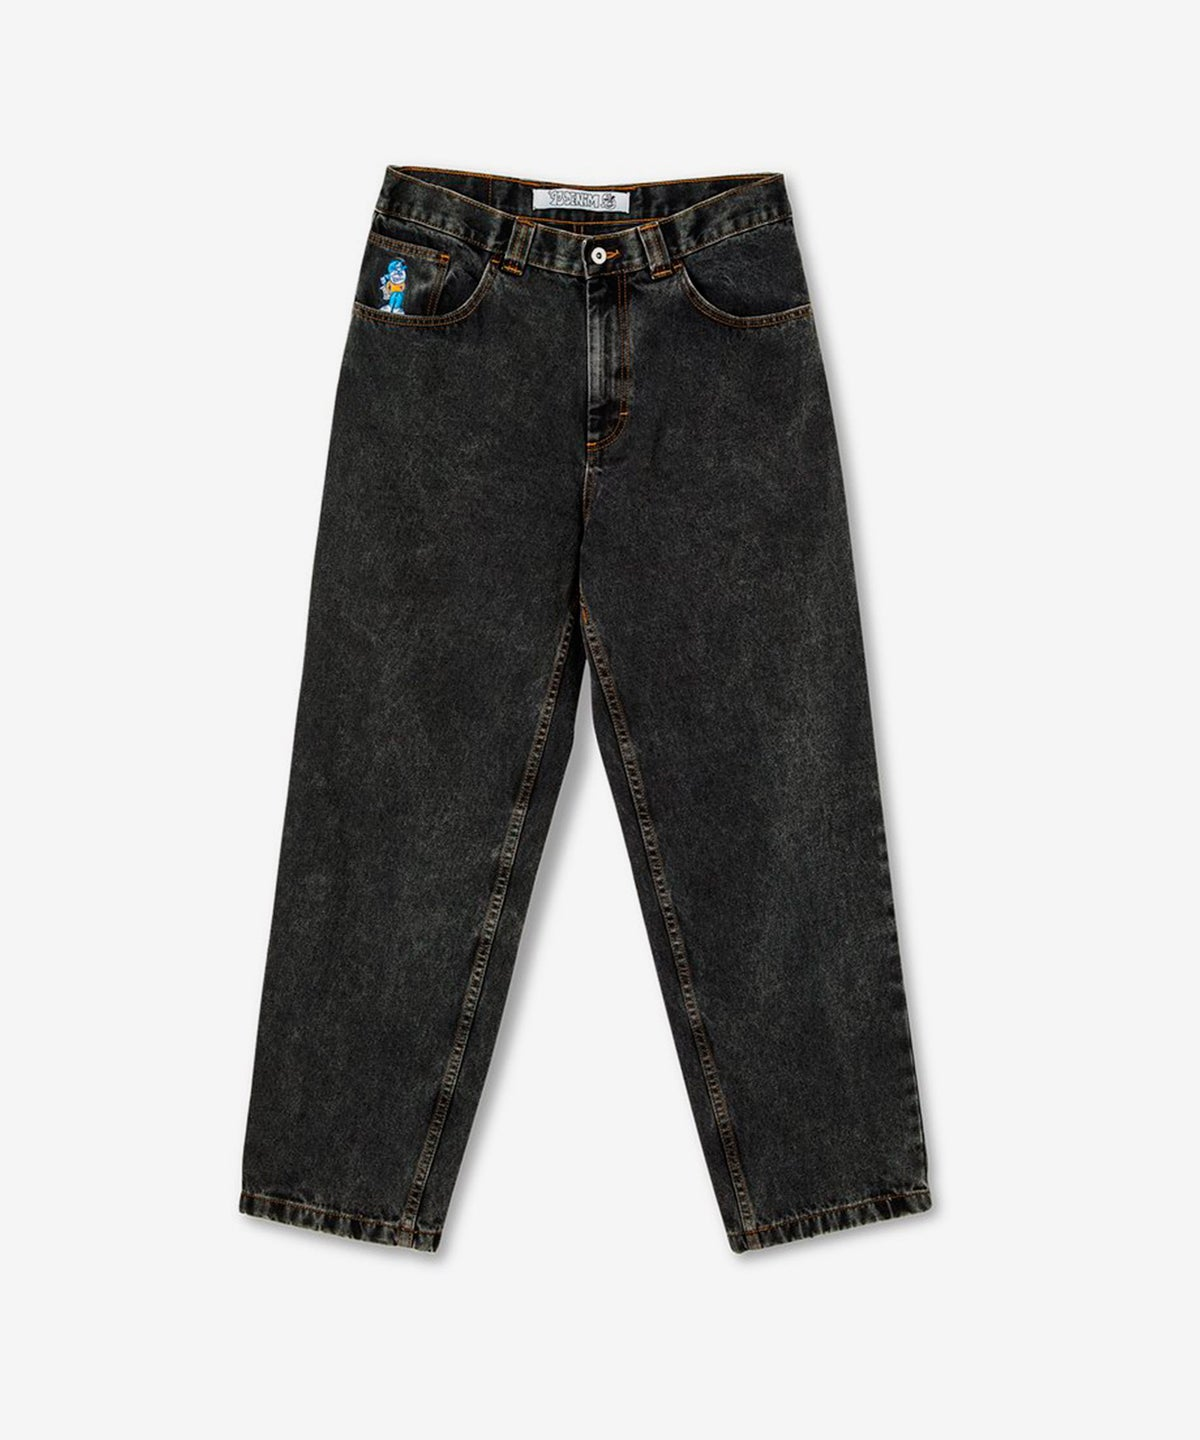 Image of POLAR_93 ! DENIM :::WASHED BLACK:::